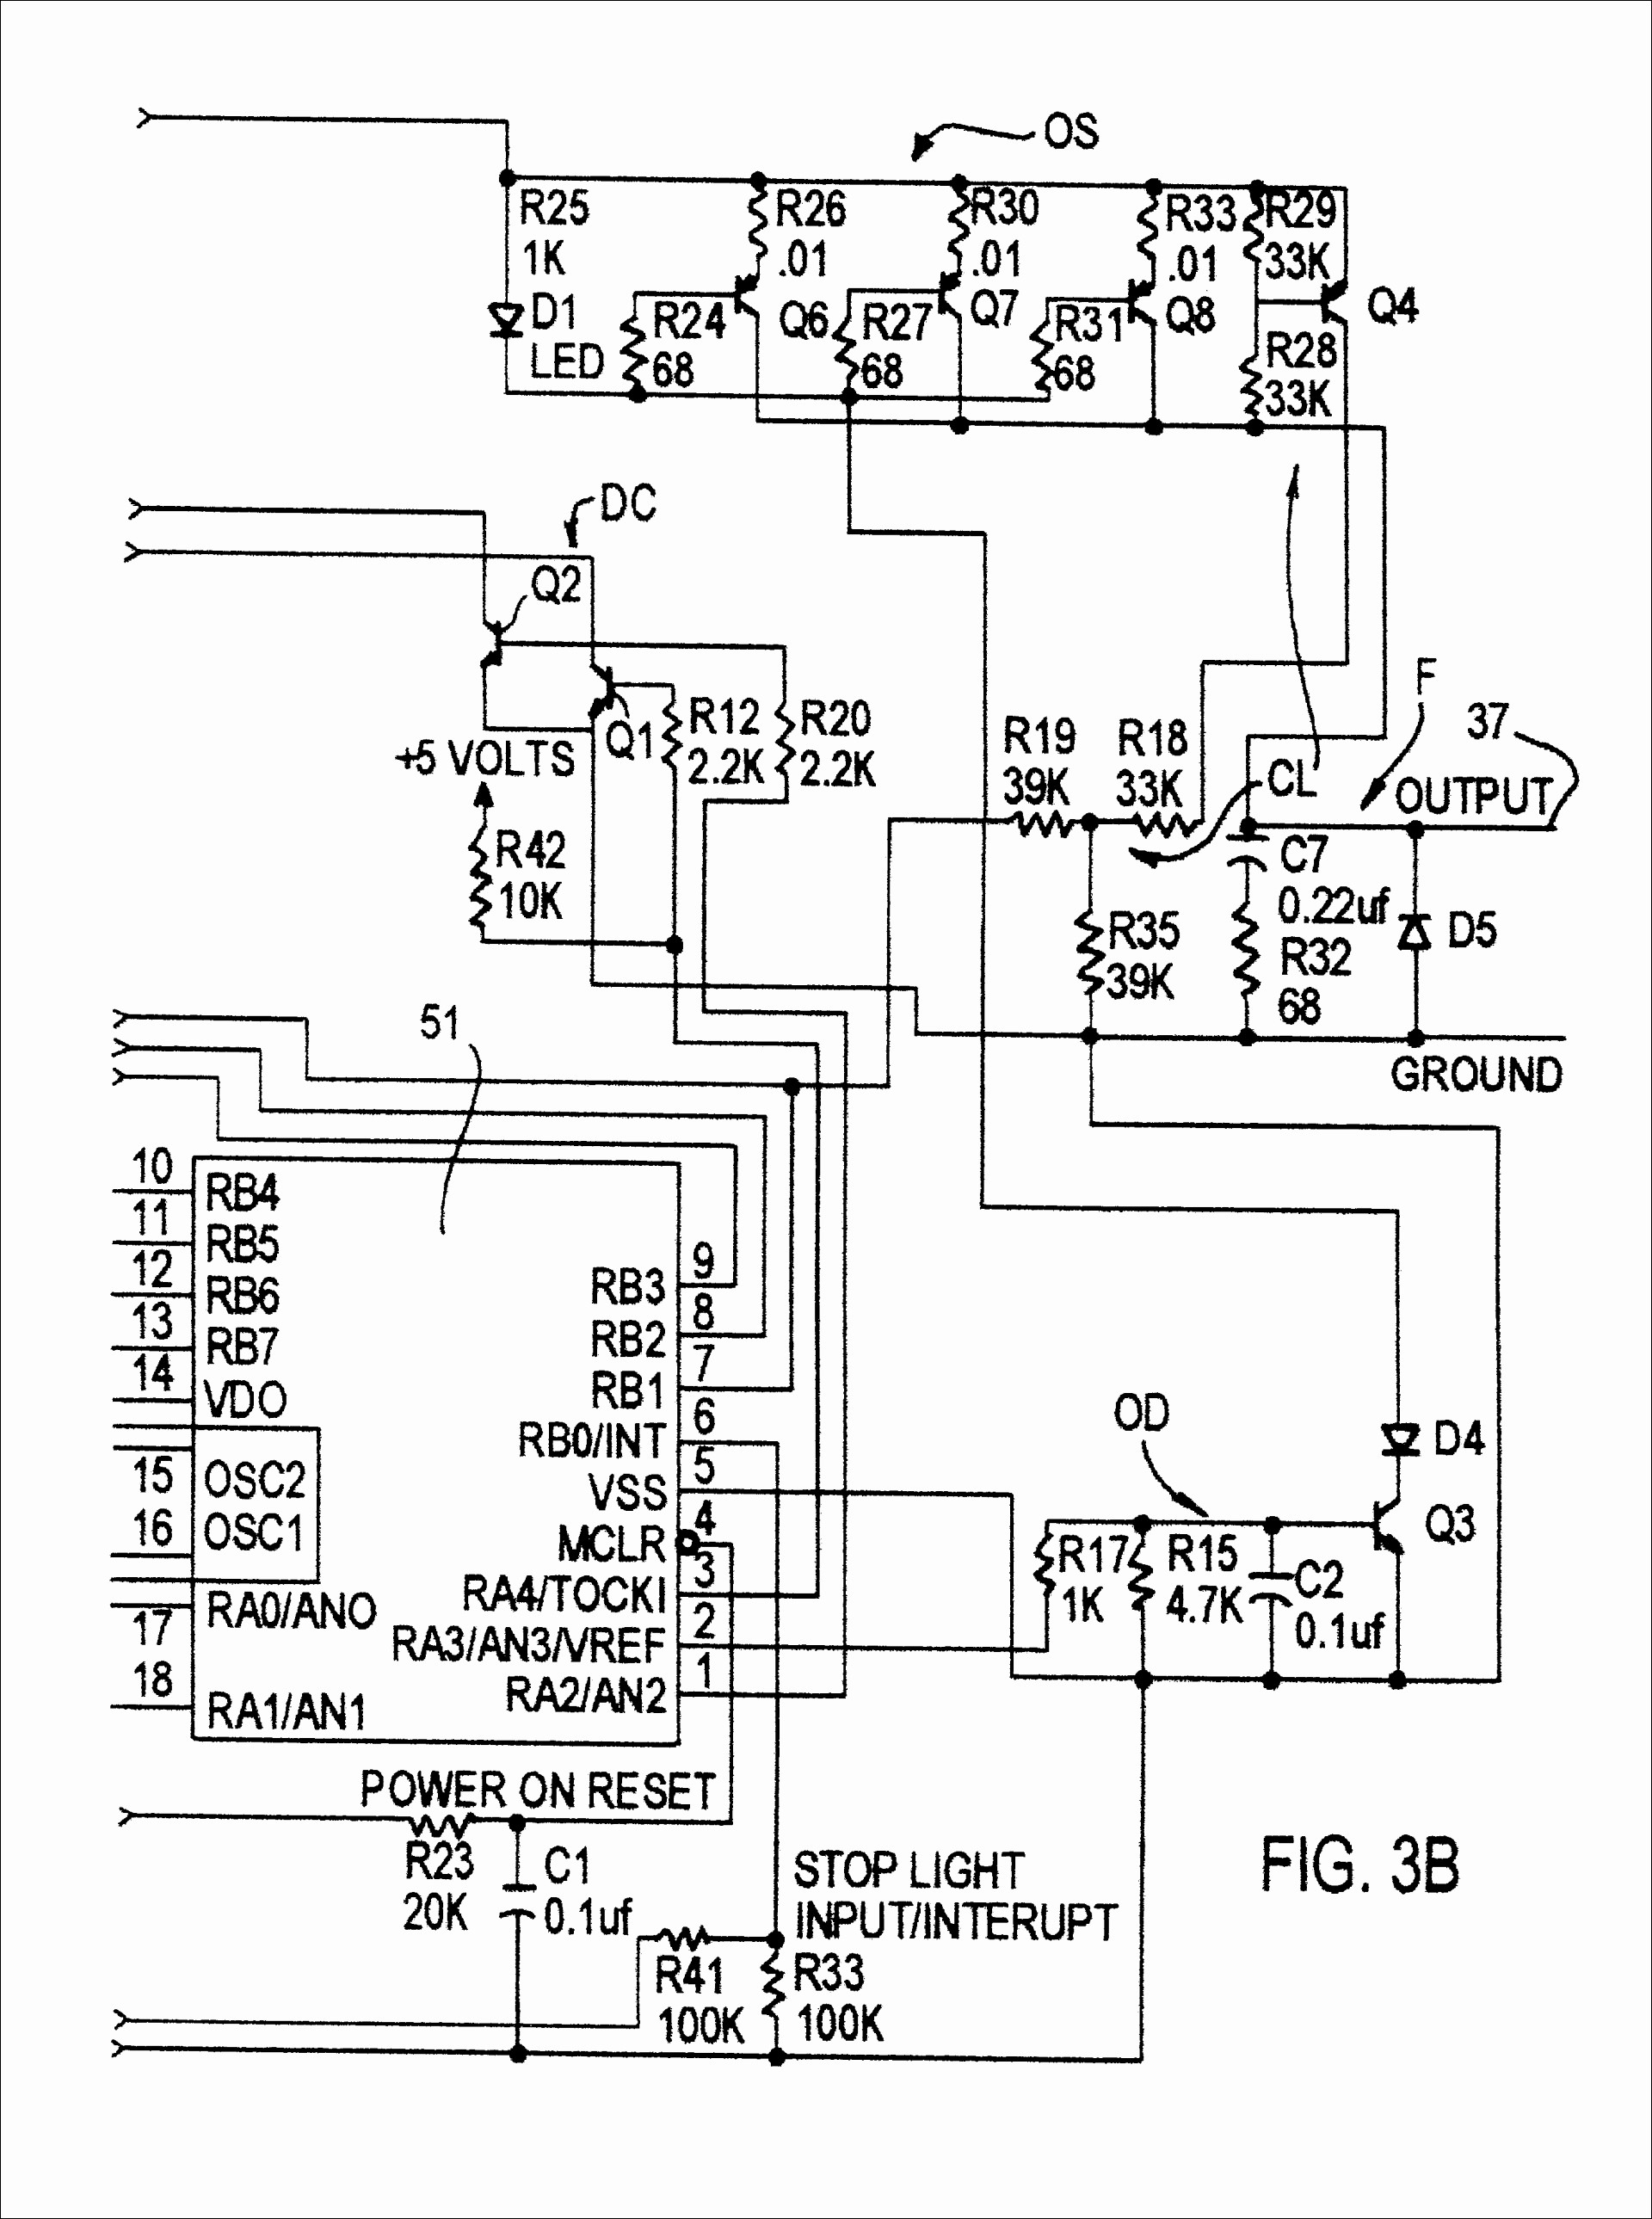 Subaru Baja Wiring Diagram | #1 Wiring Diagram Source on boat diagrams basic, pontoon boat schematics, boat drain schematic, boat livewell systems, boat wire, radar schematics, boat ac, radio schematics, boat electrical diagrams, ford diagrams schematics, boat circuit diagram, boat schematic diagram, boat motor schematics, electrical schematics, boat deadrise diagram, boat specifications, boat axles, boat cooling system, ship schematics,